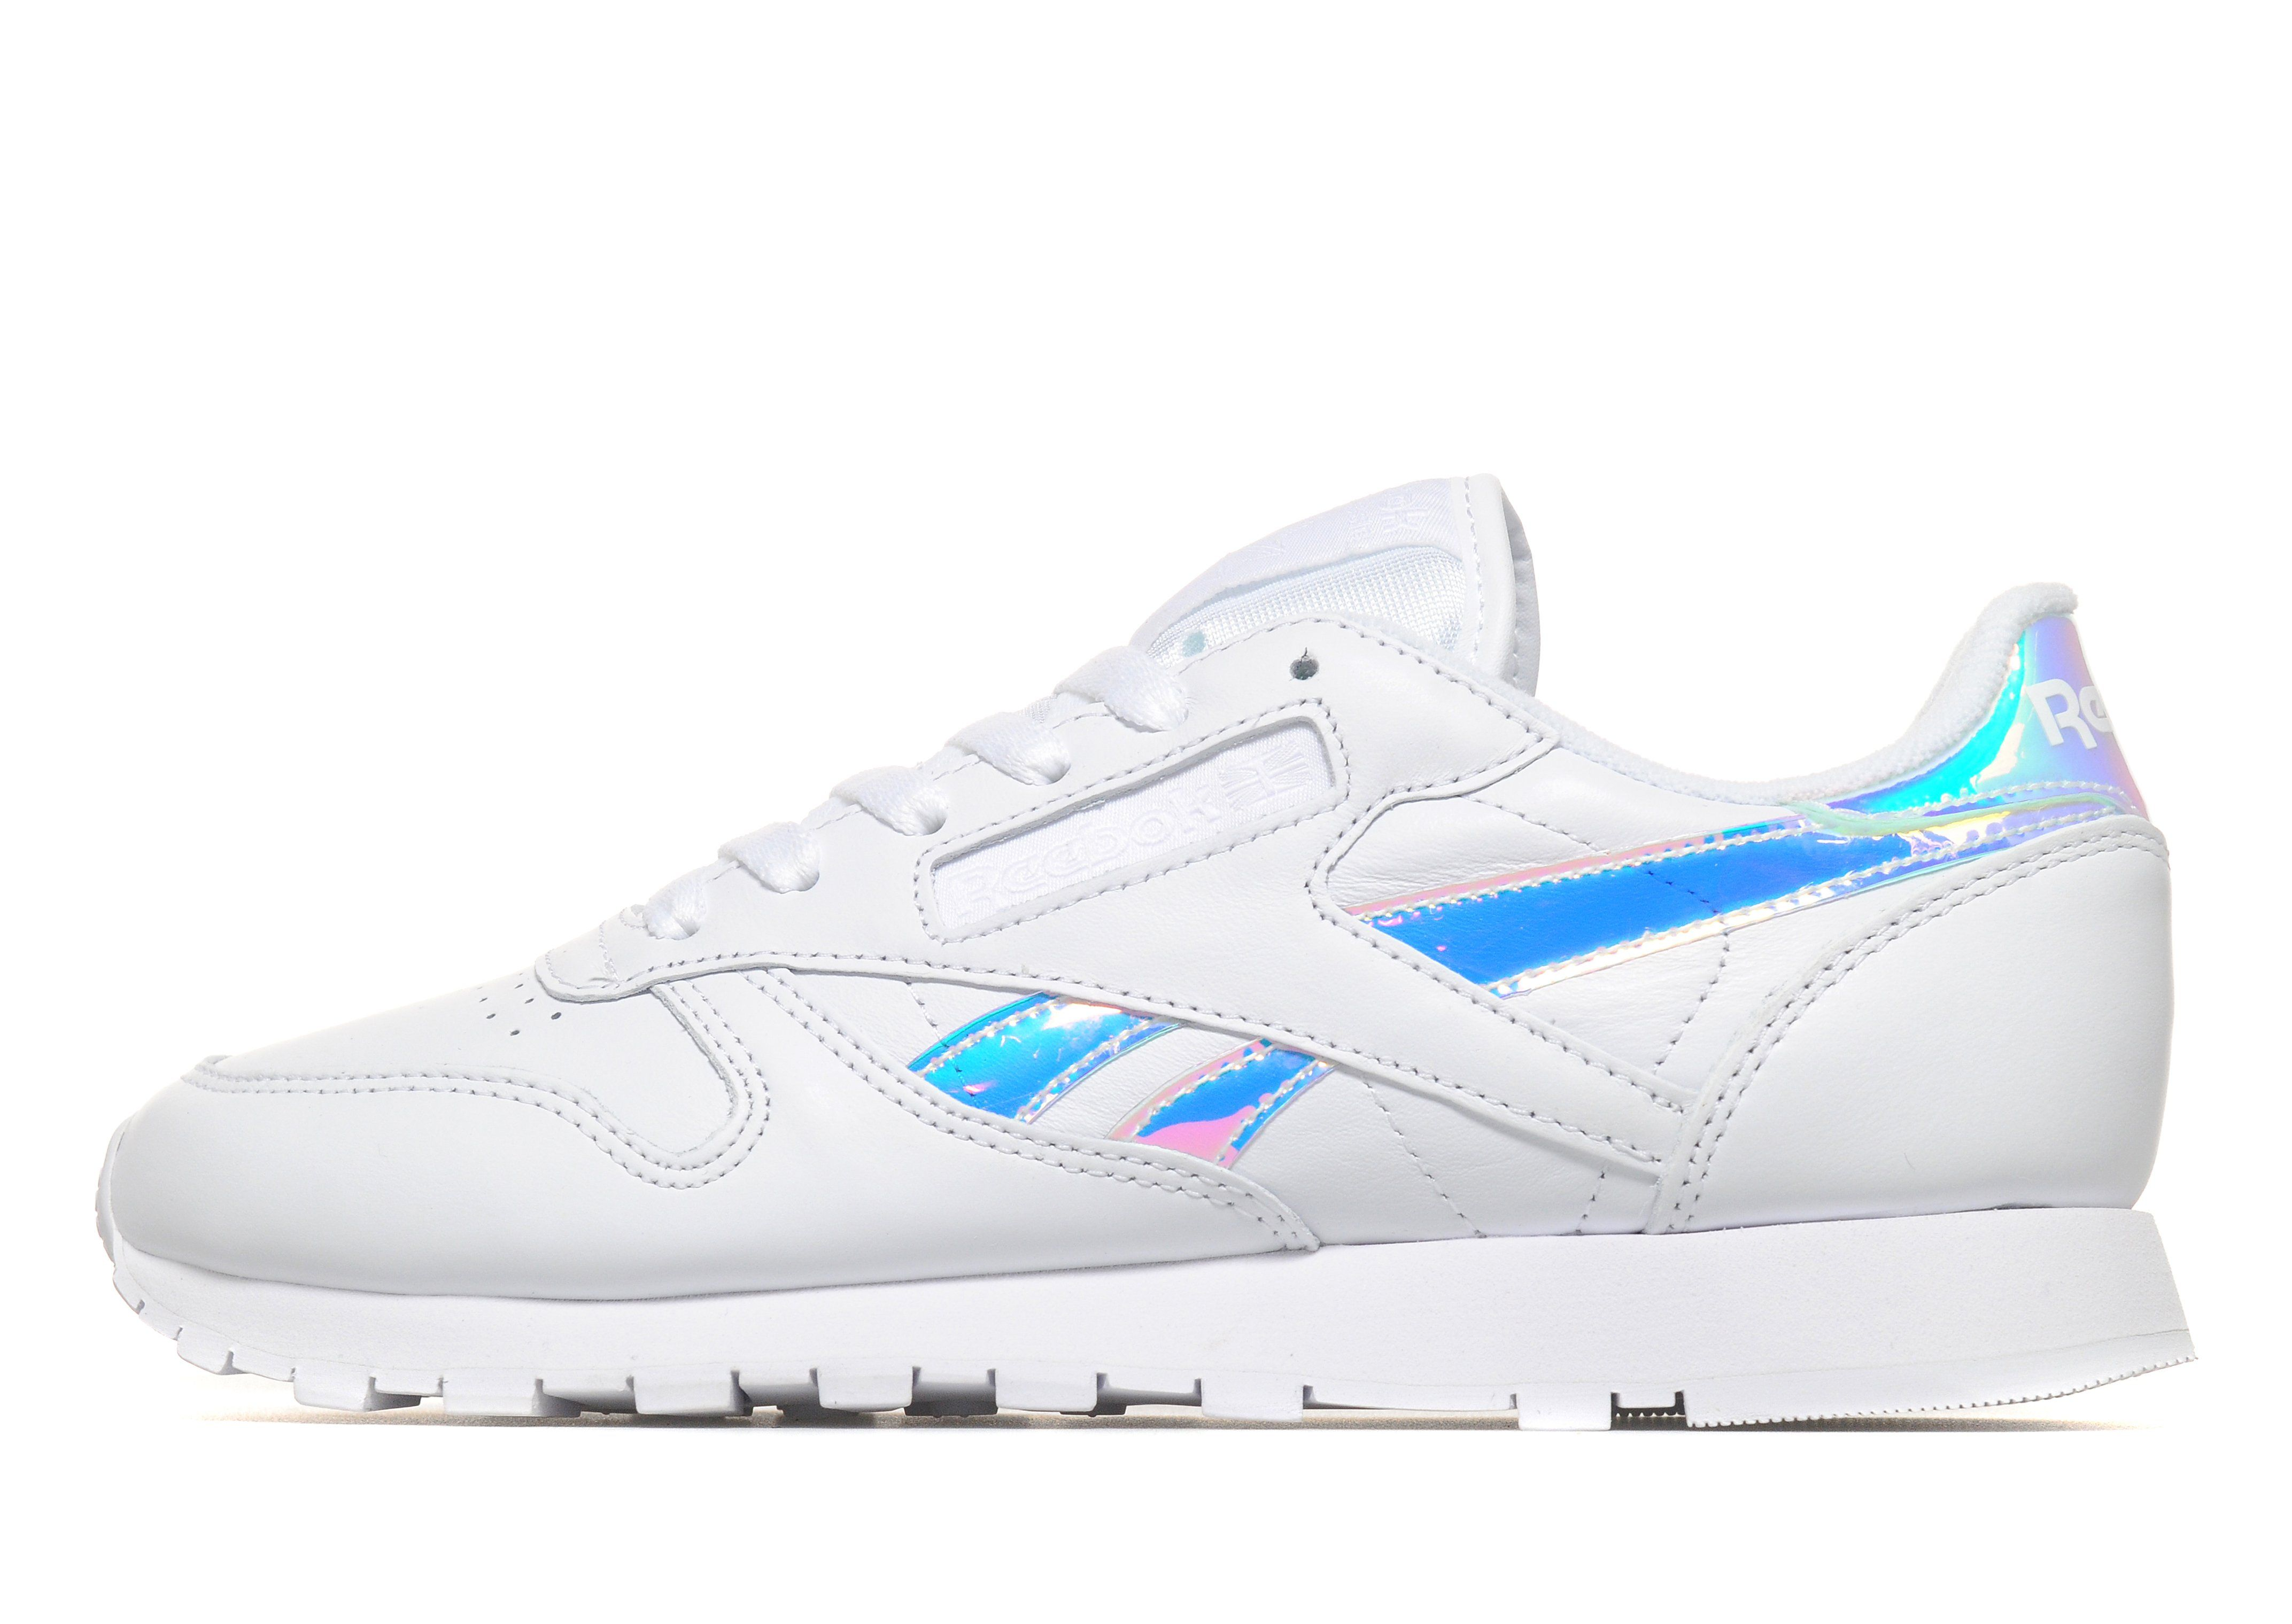 d6d877a492c5 free shipping Reebok Classic Leather Iridescent Women s